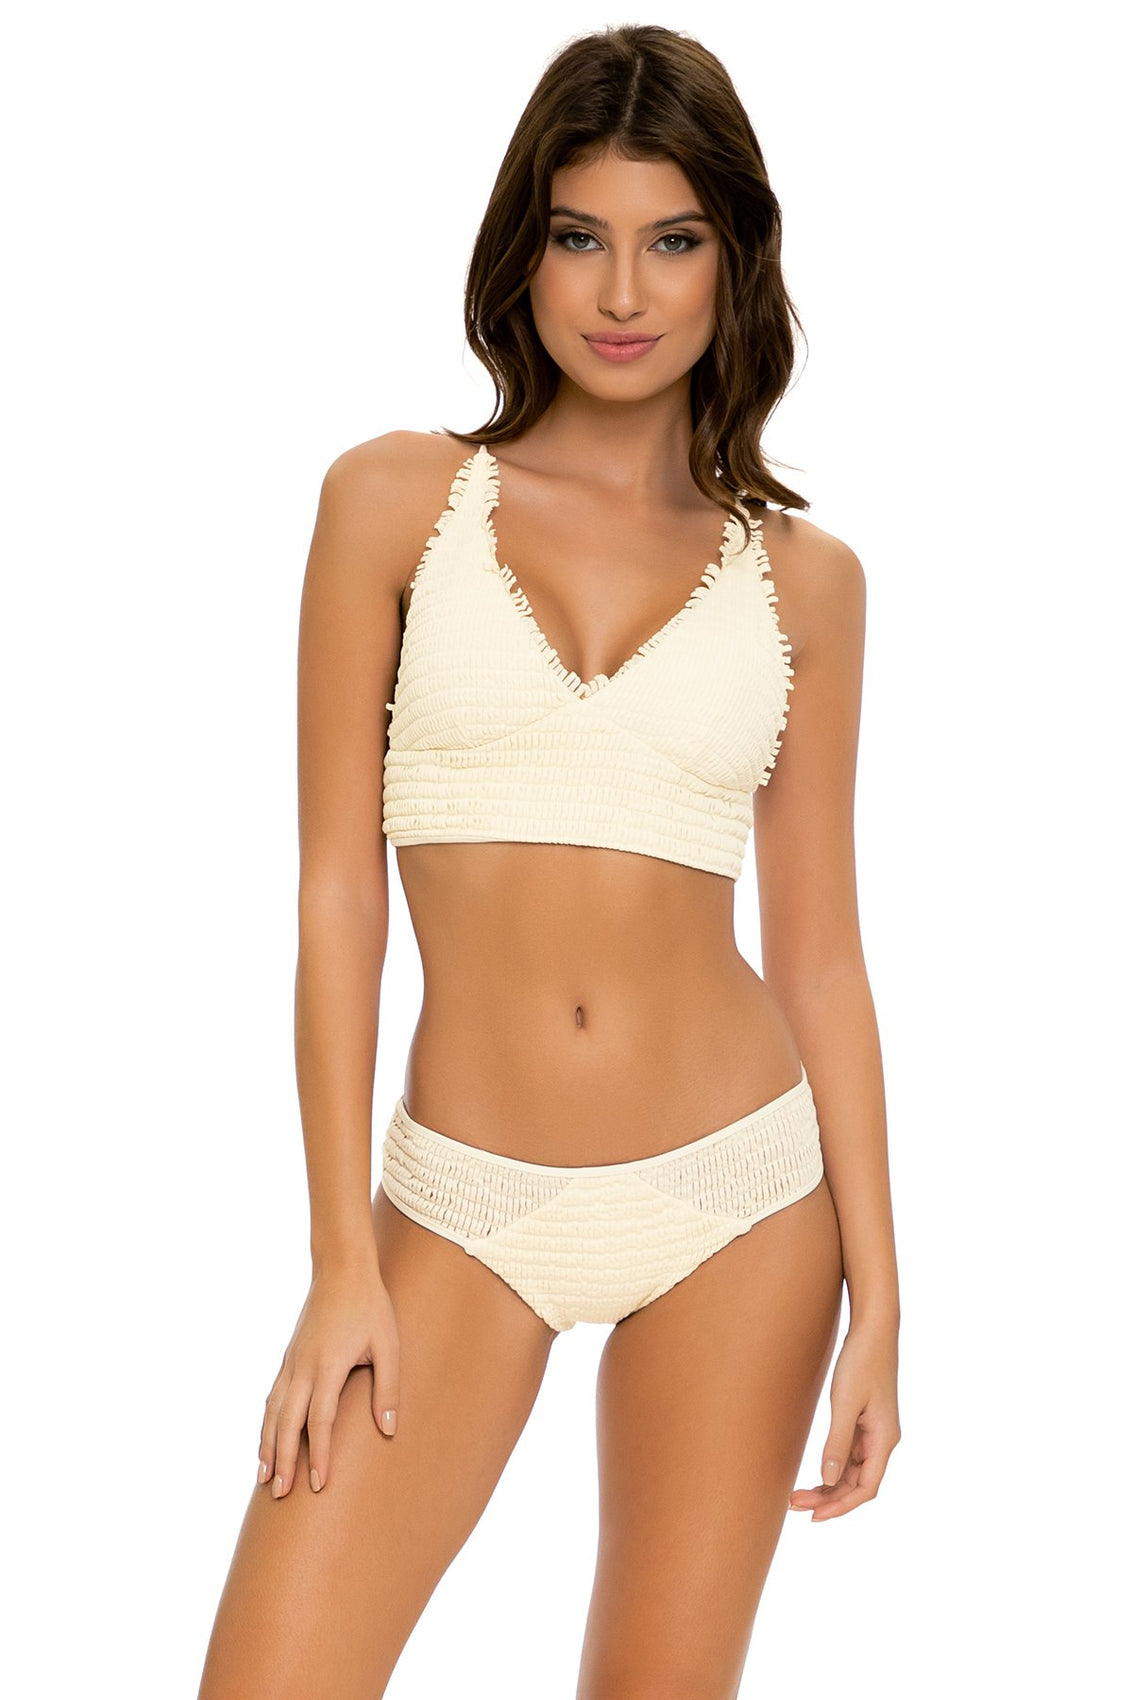 DESERT STAR - Cross Back Bustier Top & Full Bottom • Ivory